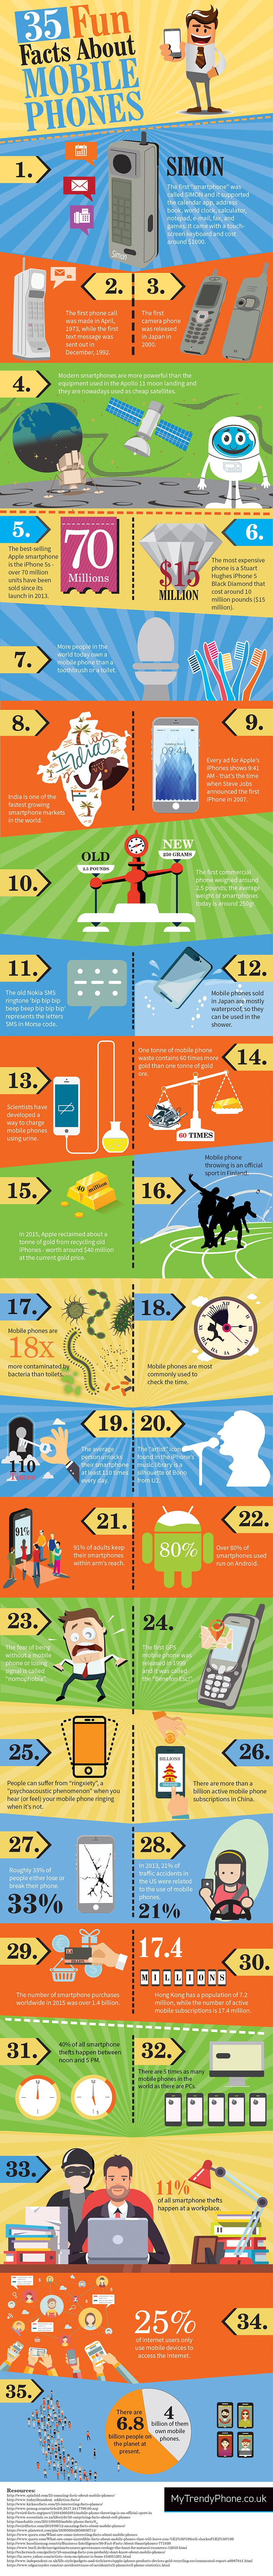 35 Interesting Facts About Mobile Phones Infographic